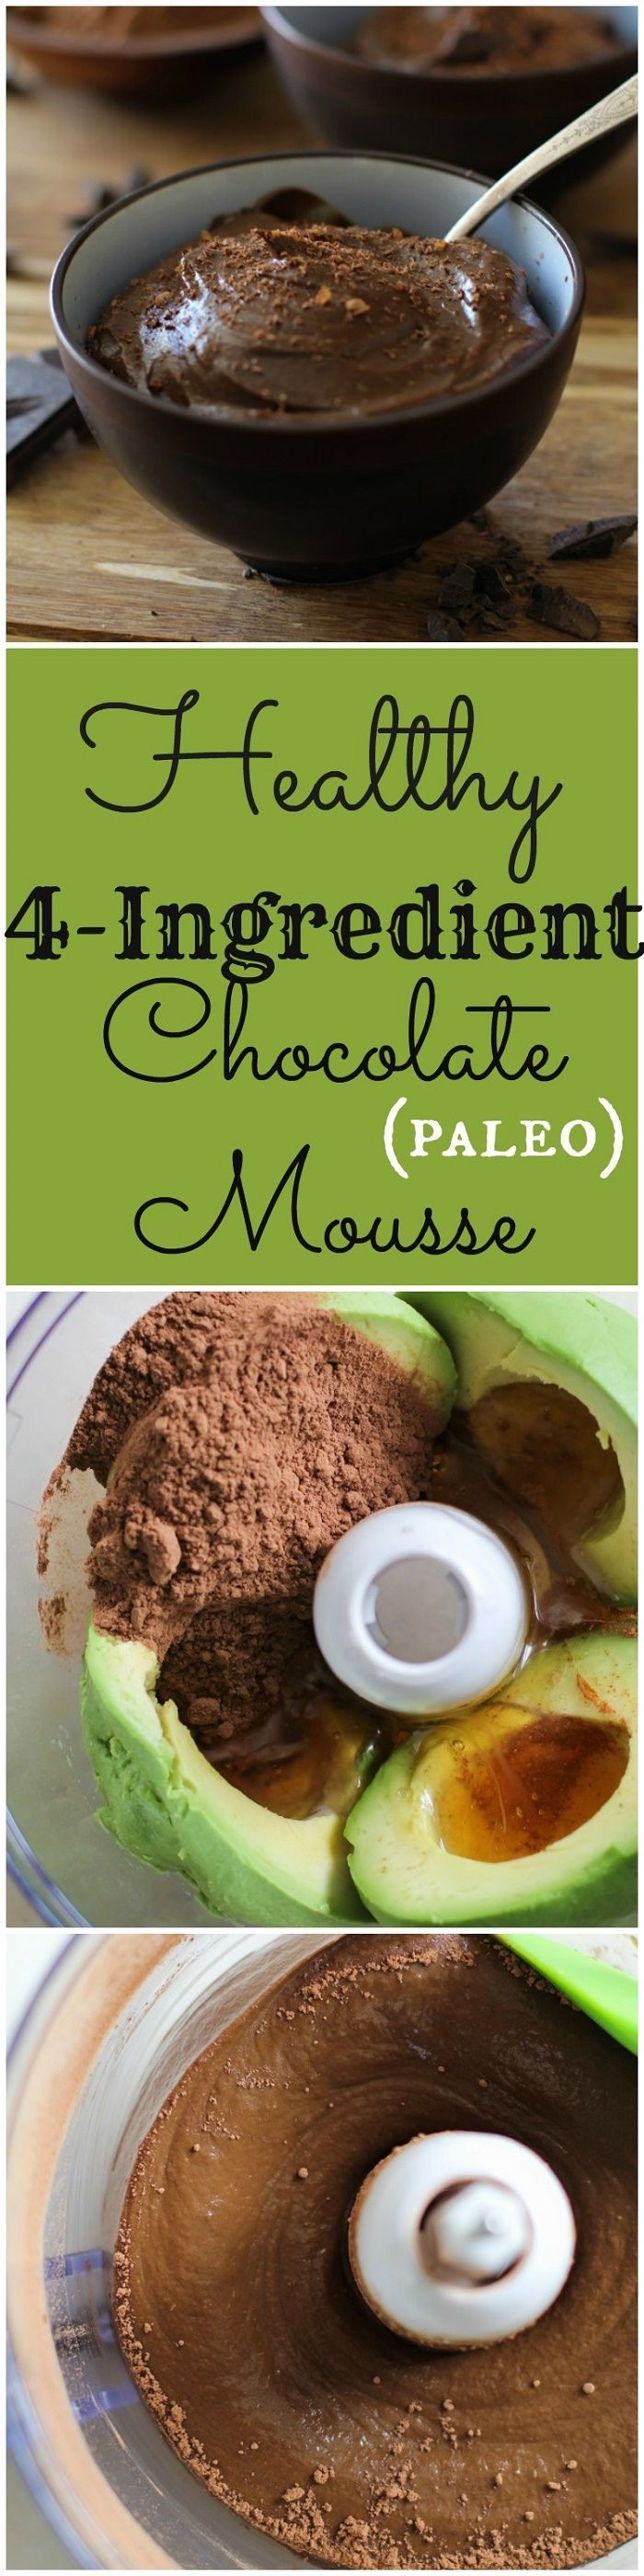 cool Healthy 4-Ingredient Chocolate Mousse (Paleo)